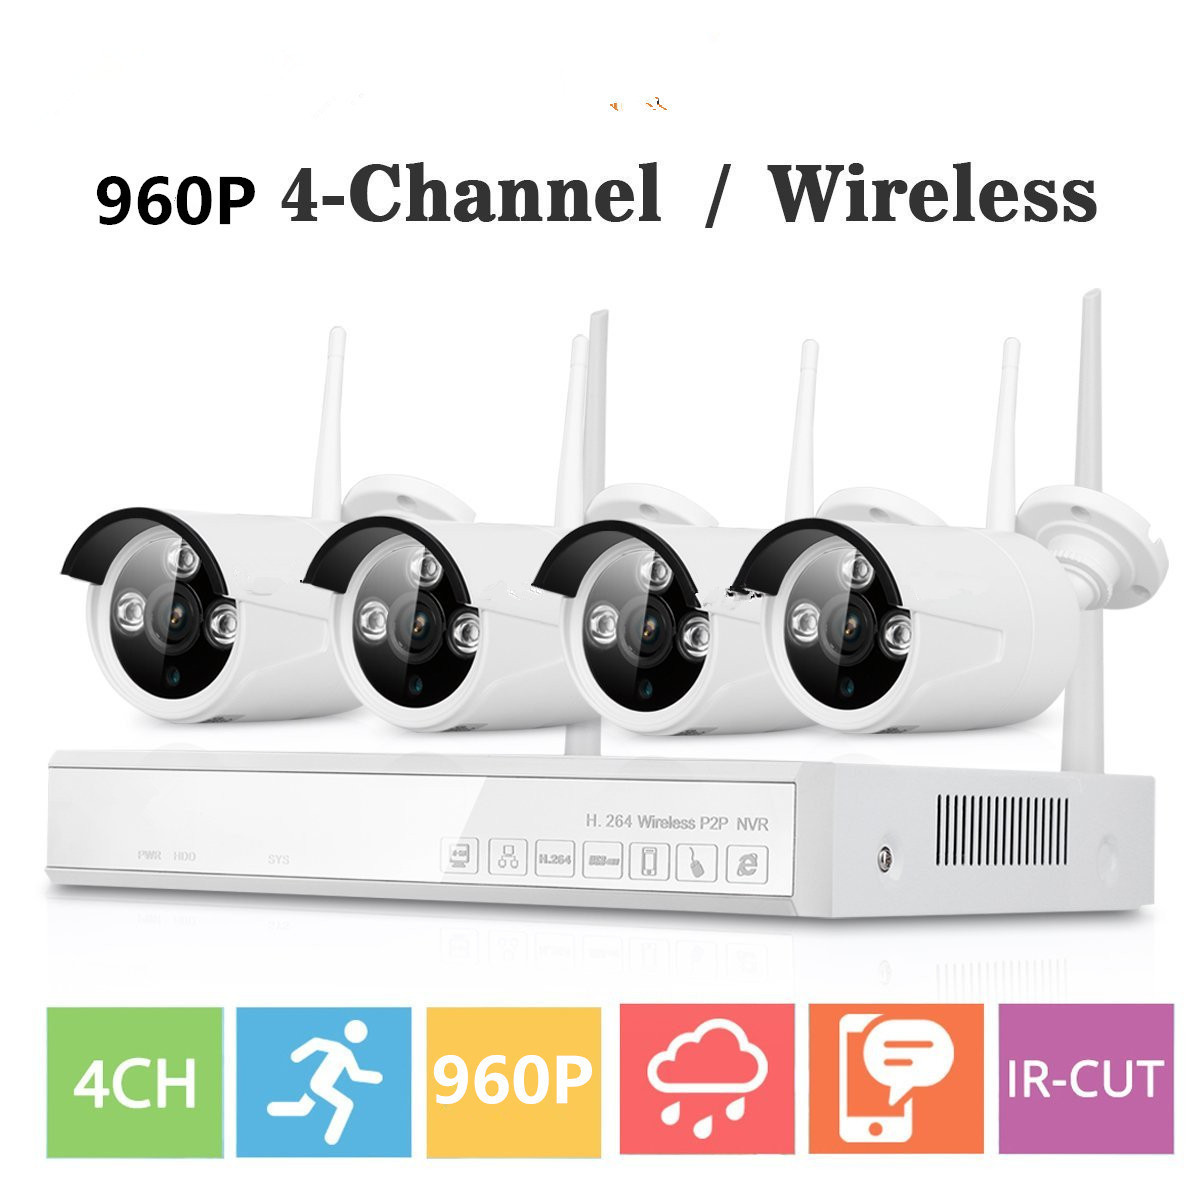 Plug and Play 960P Wireless NVR Surveillance Kit P2P 1.3MP FULL HD Outdoor Security IP Camera WIFI CCTV System APP View